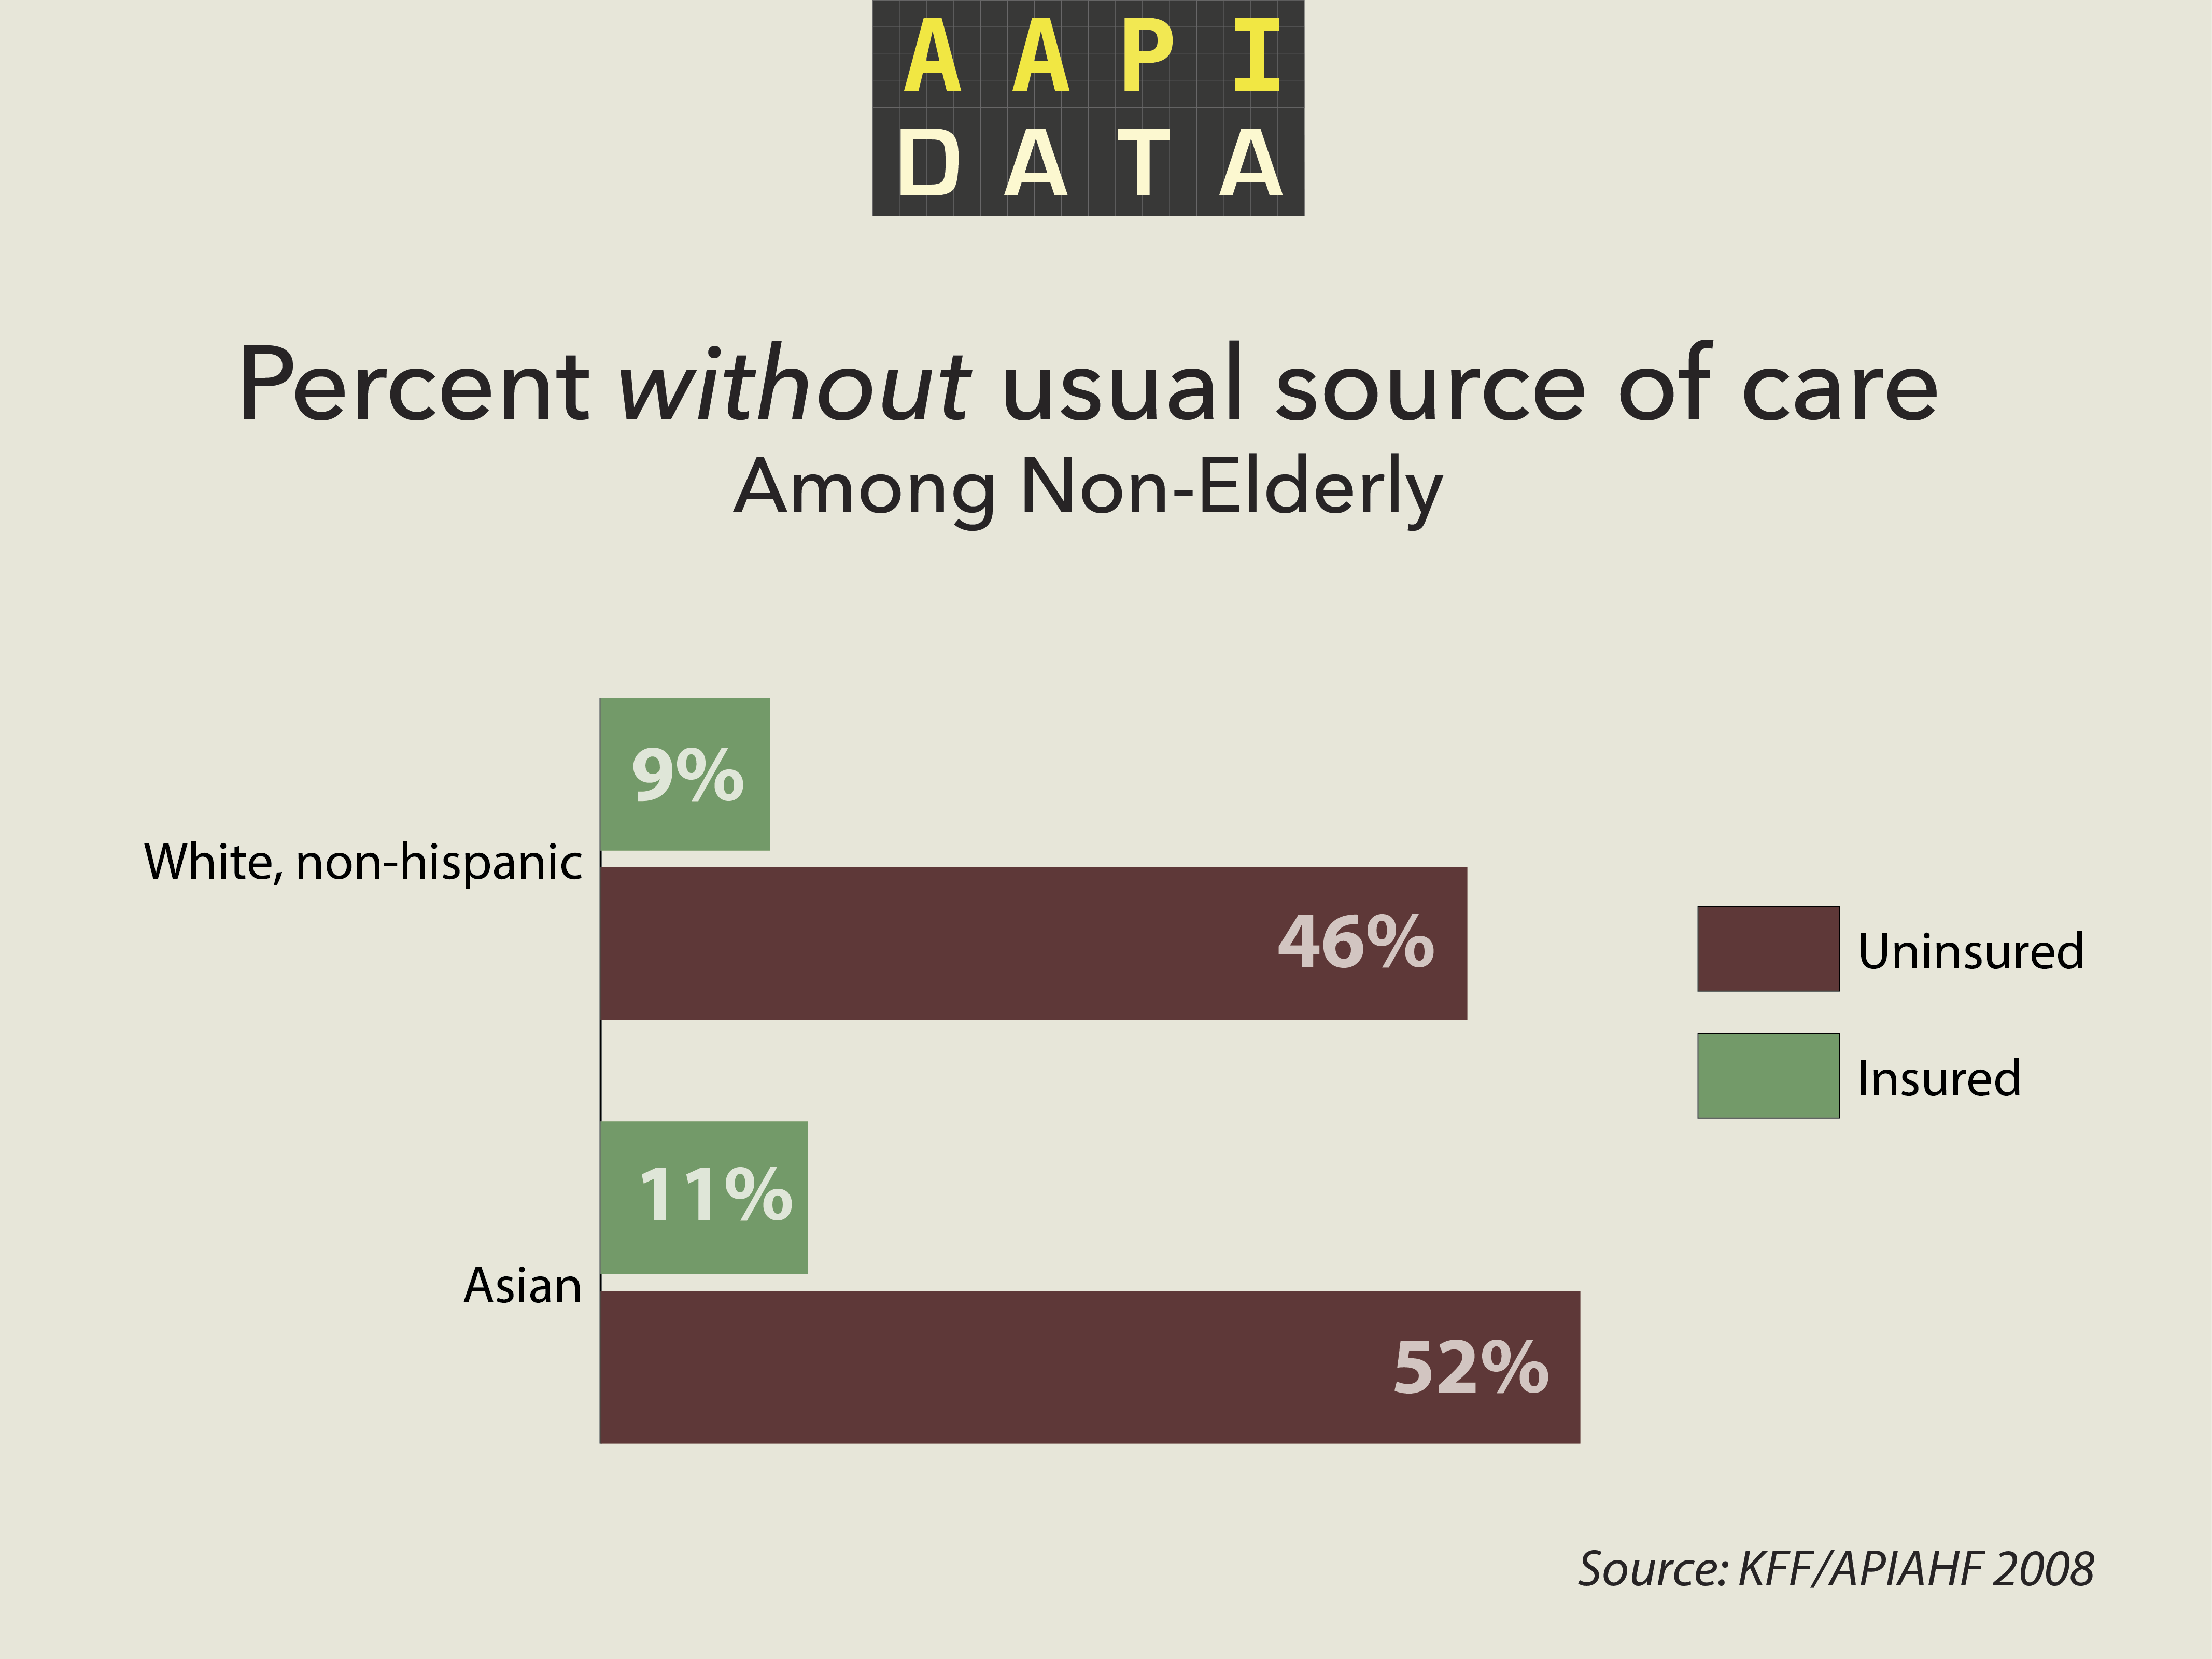 aapidata-usual-care-2008